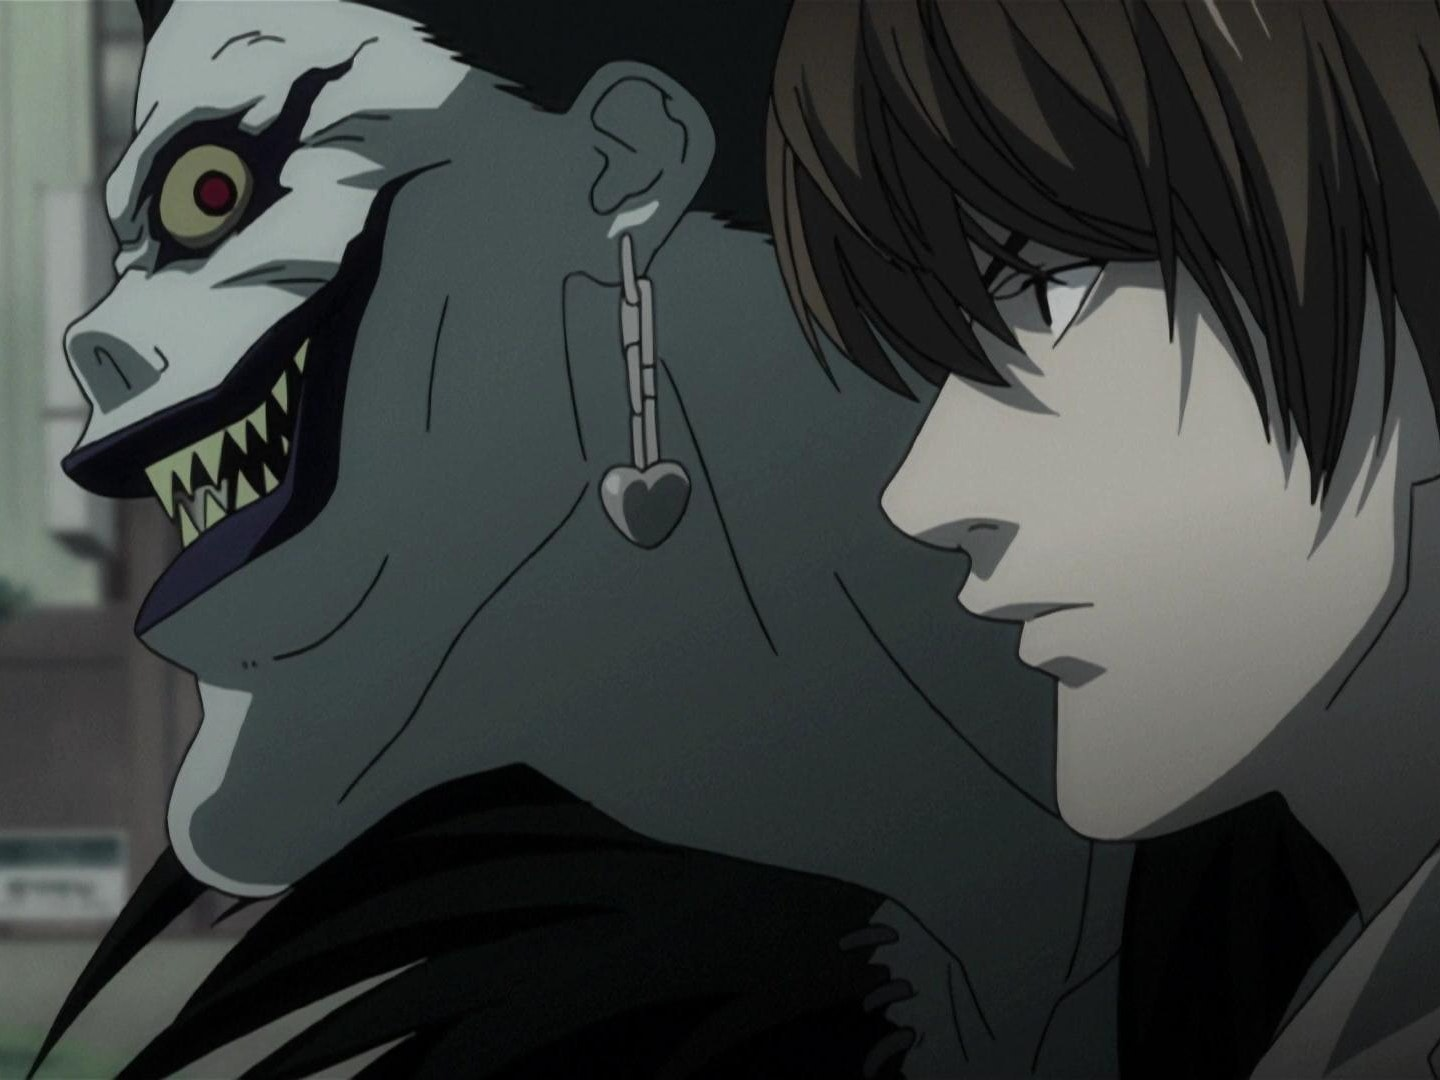 Although part fantasy, 'Death Note' still focuses more on the crimes and solving (commiting) them instead of focusing on the shinigami